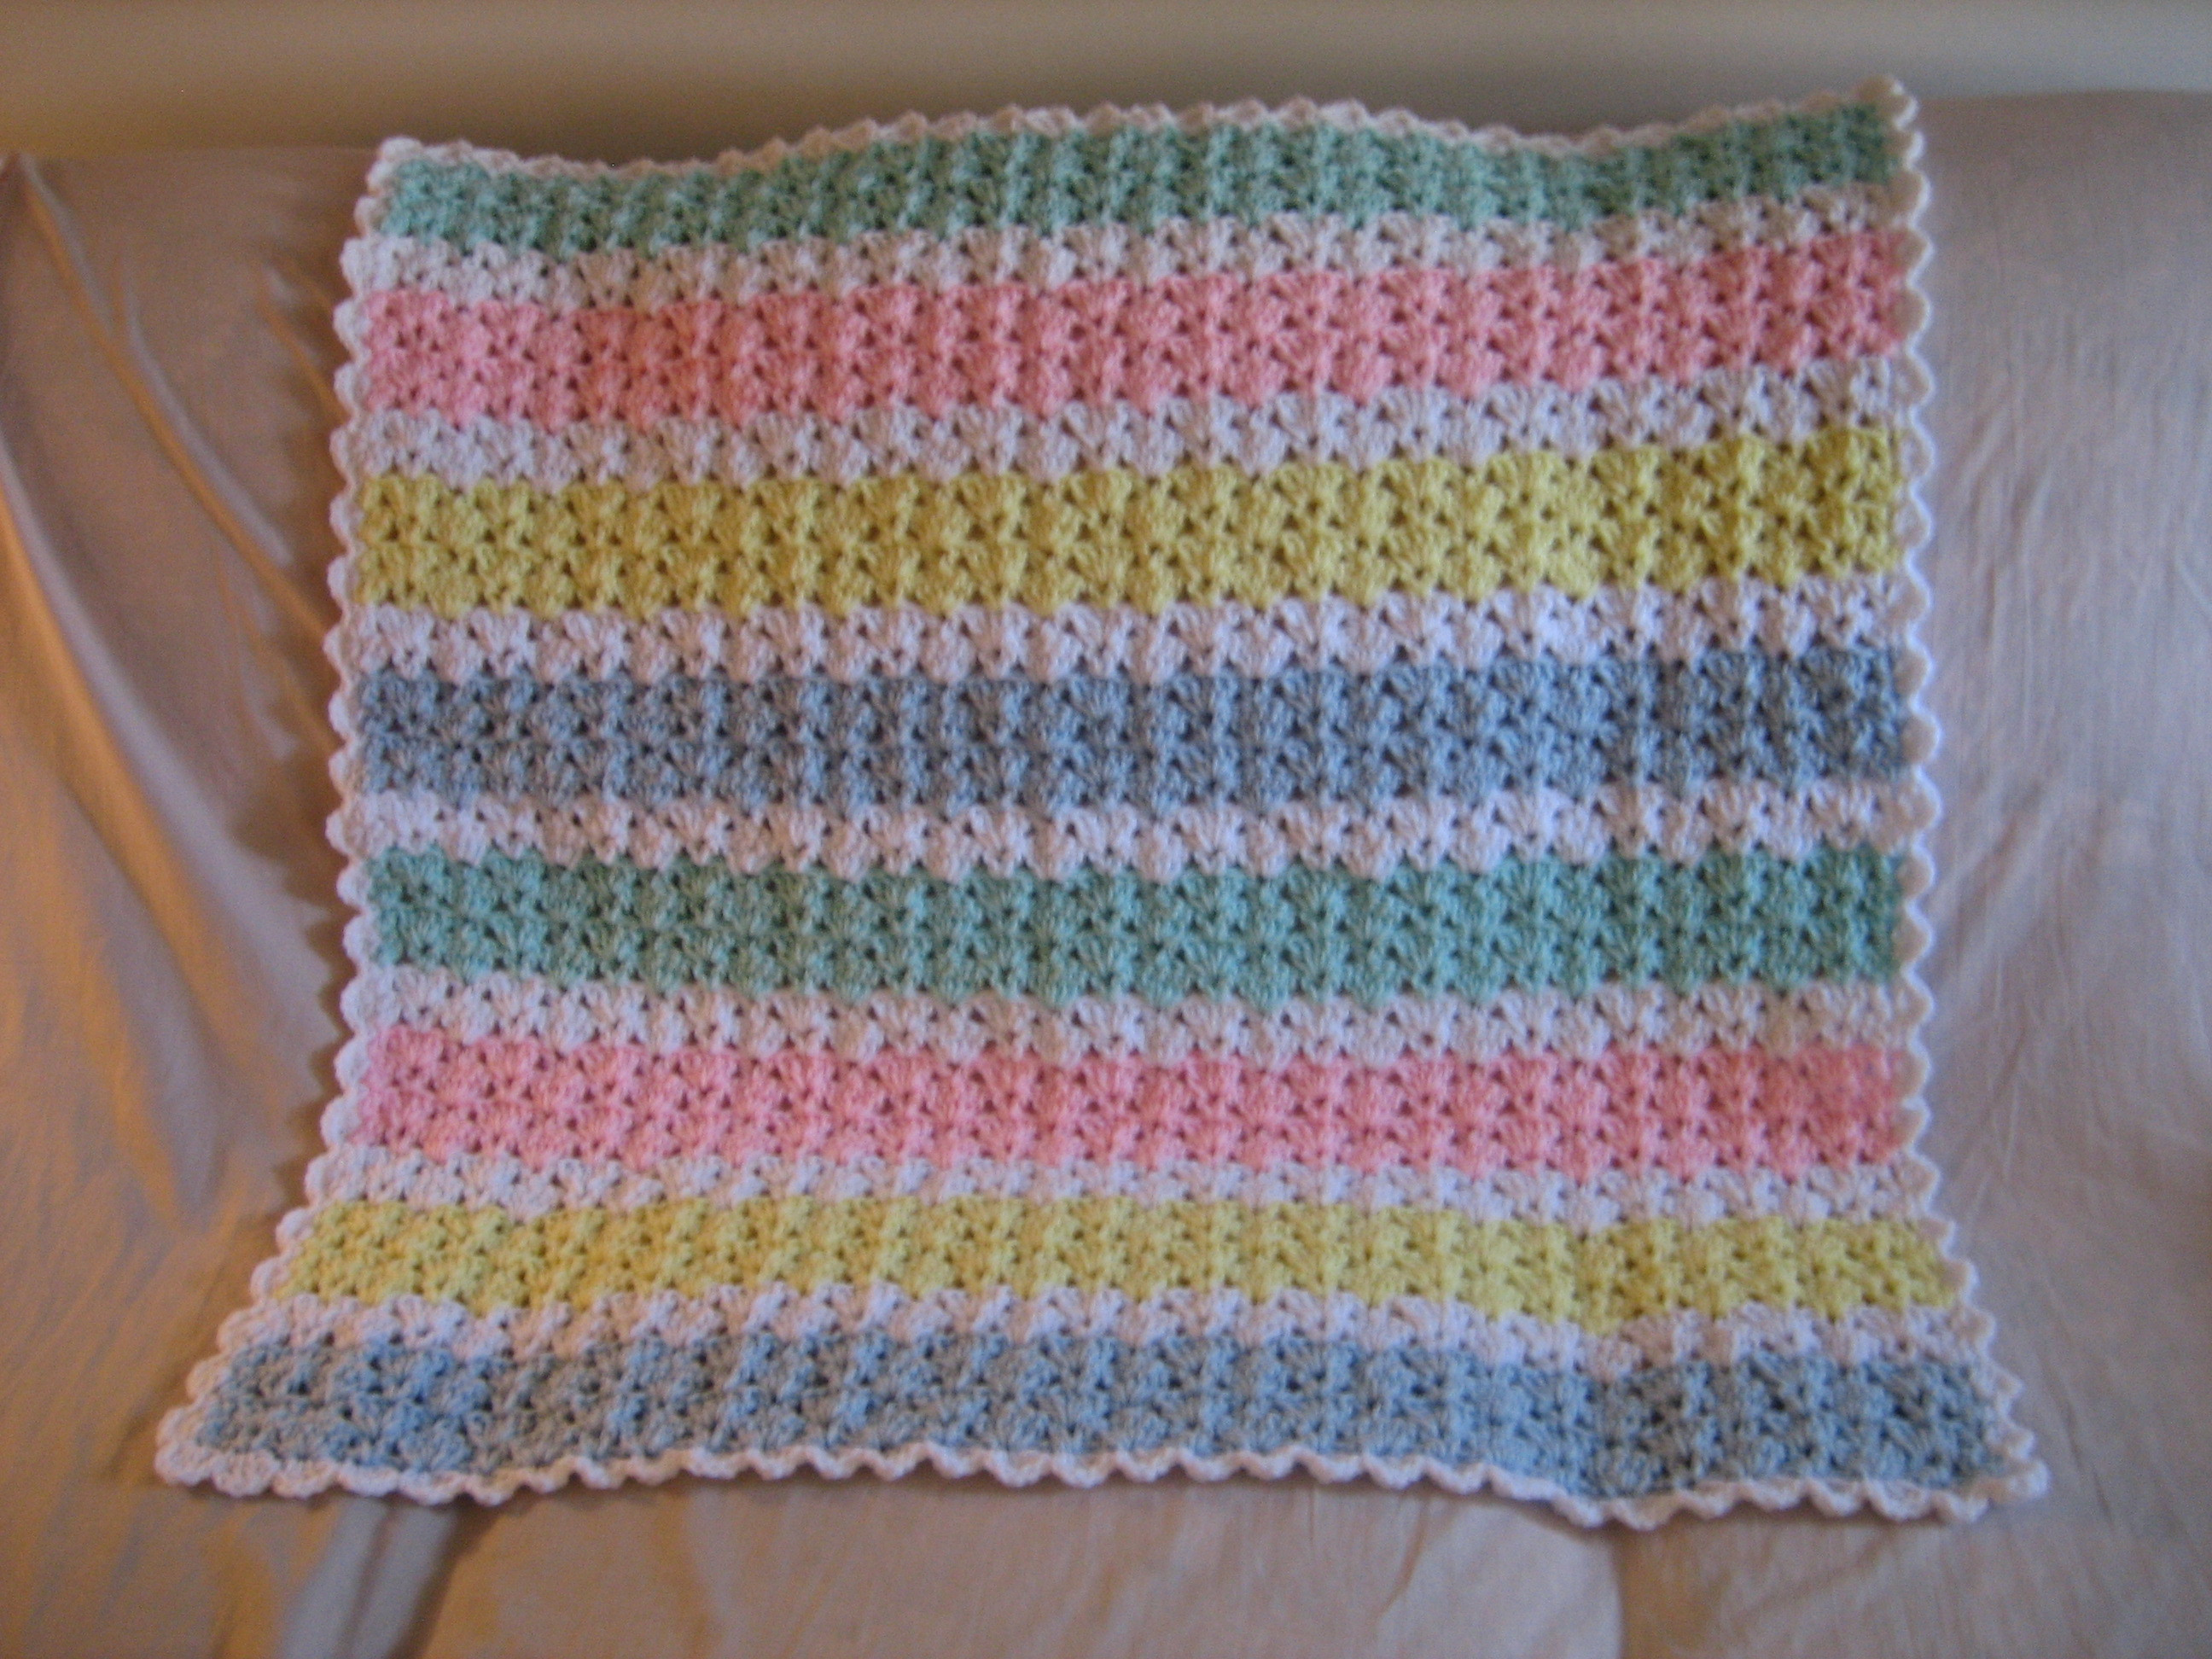 Easy Baby Blanket Patterns Awesome 39 Free Baby Afghan Crochet Patterns Of Superb 48 Ideas Easy Baby Blanket Patterns